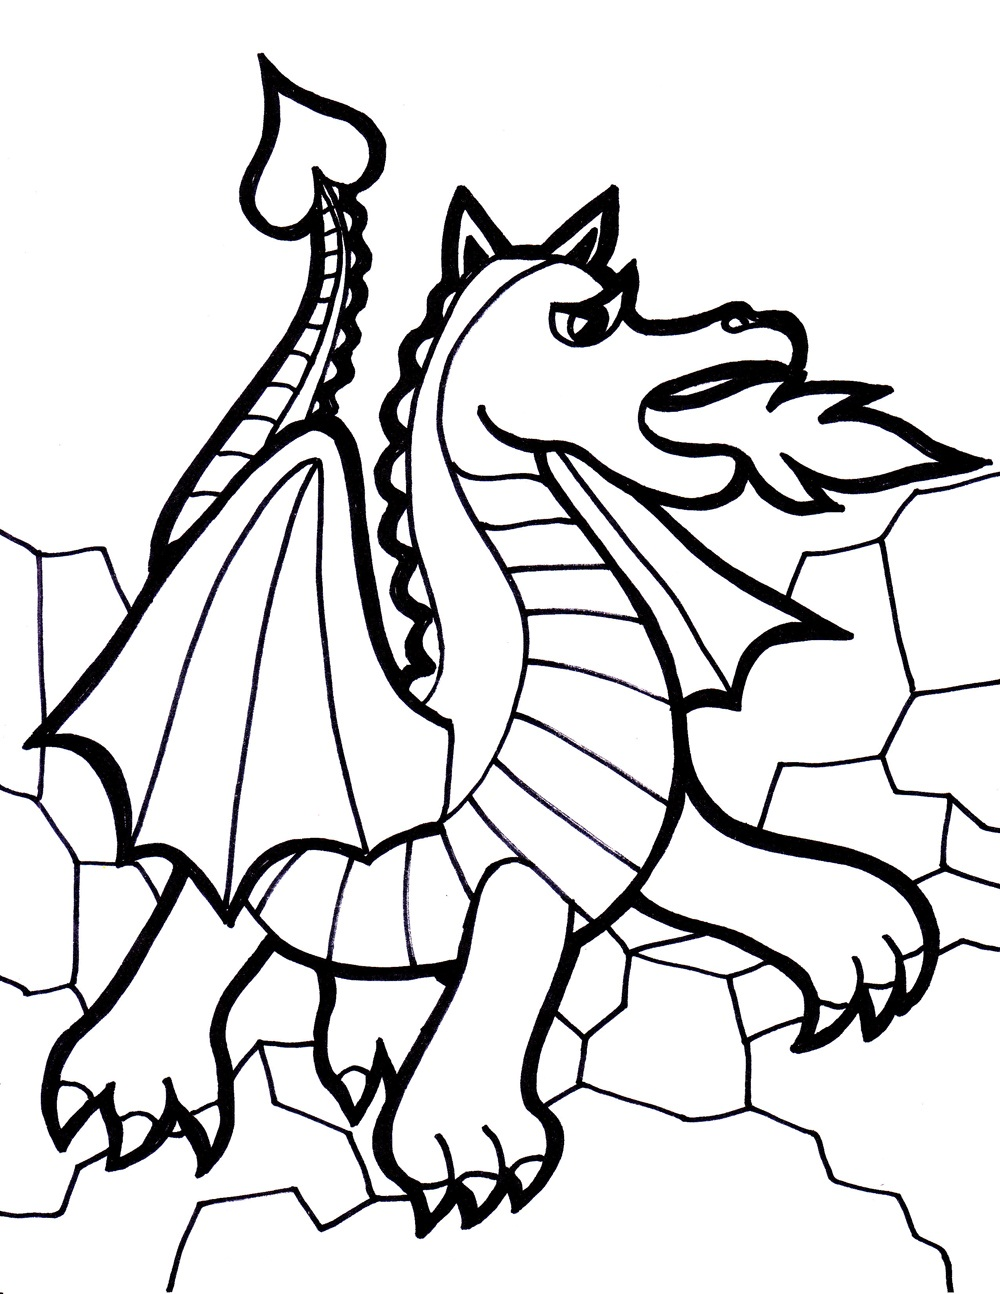 cartoon dragons coloring pages - photo#20